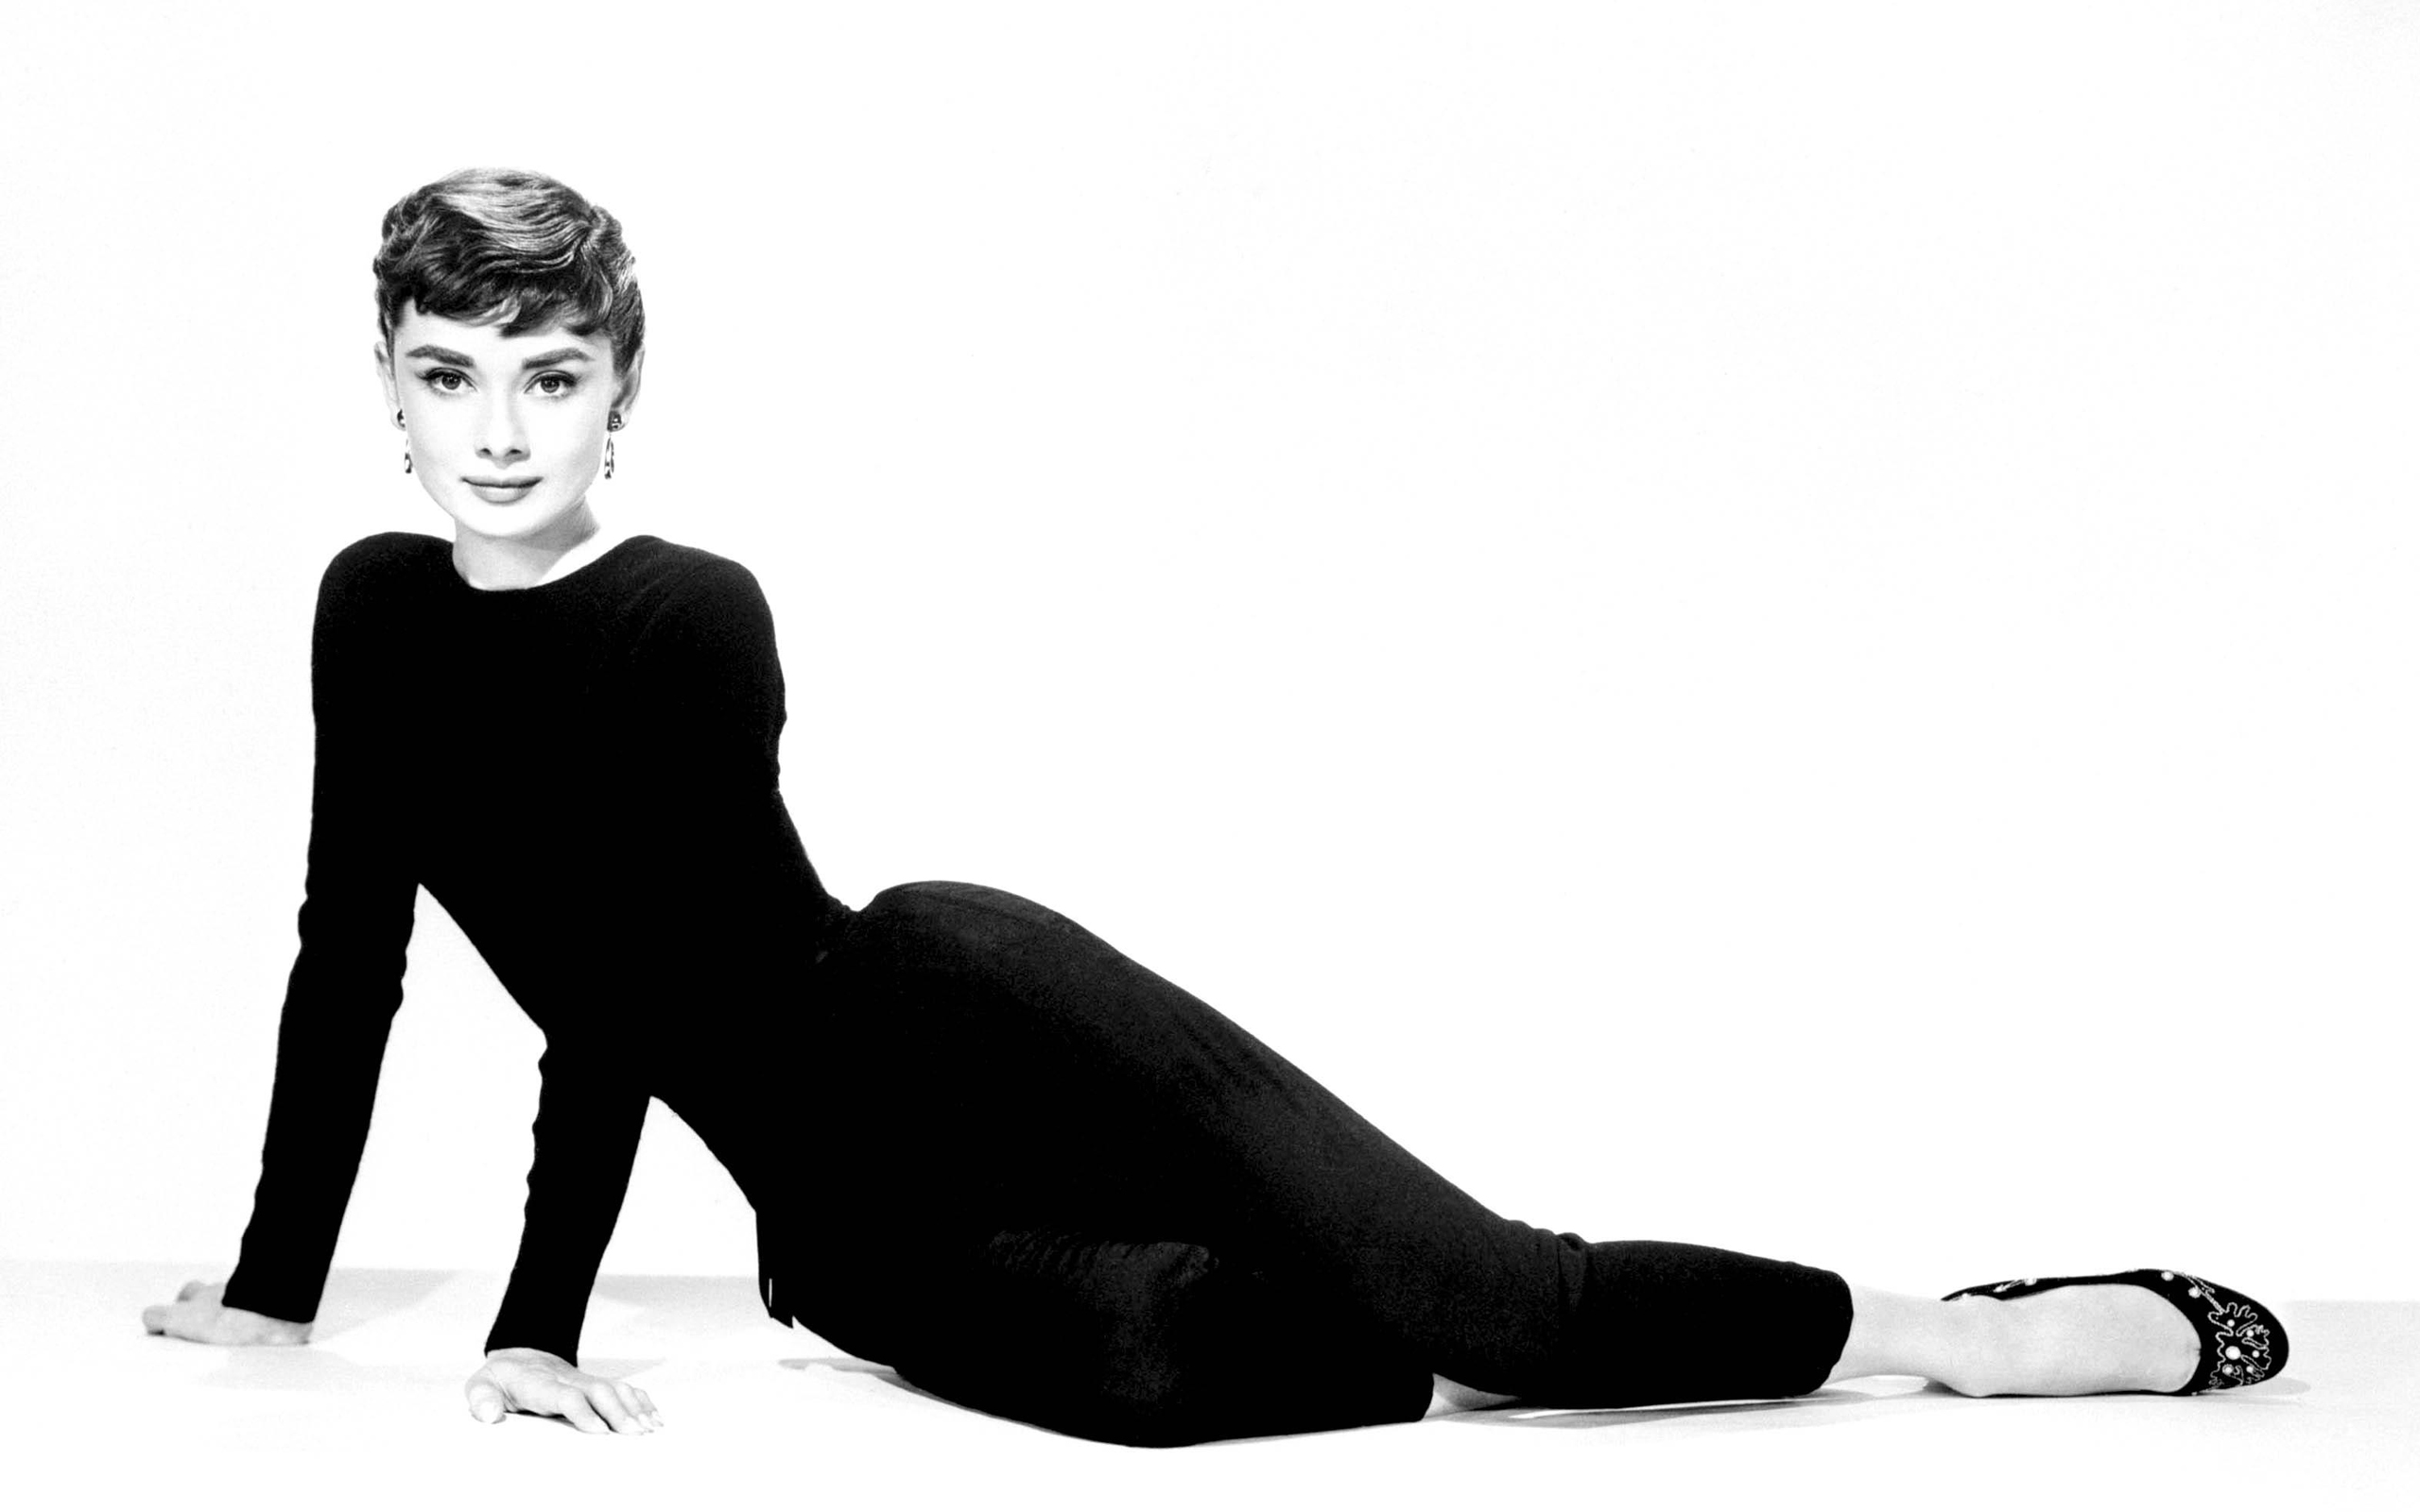 32bfda4b6a4 Audrey-Hepburn-Wallpaper-8. We ladies have the fashion forward